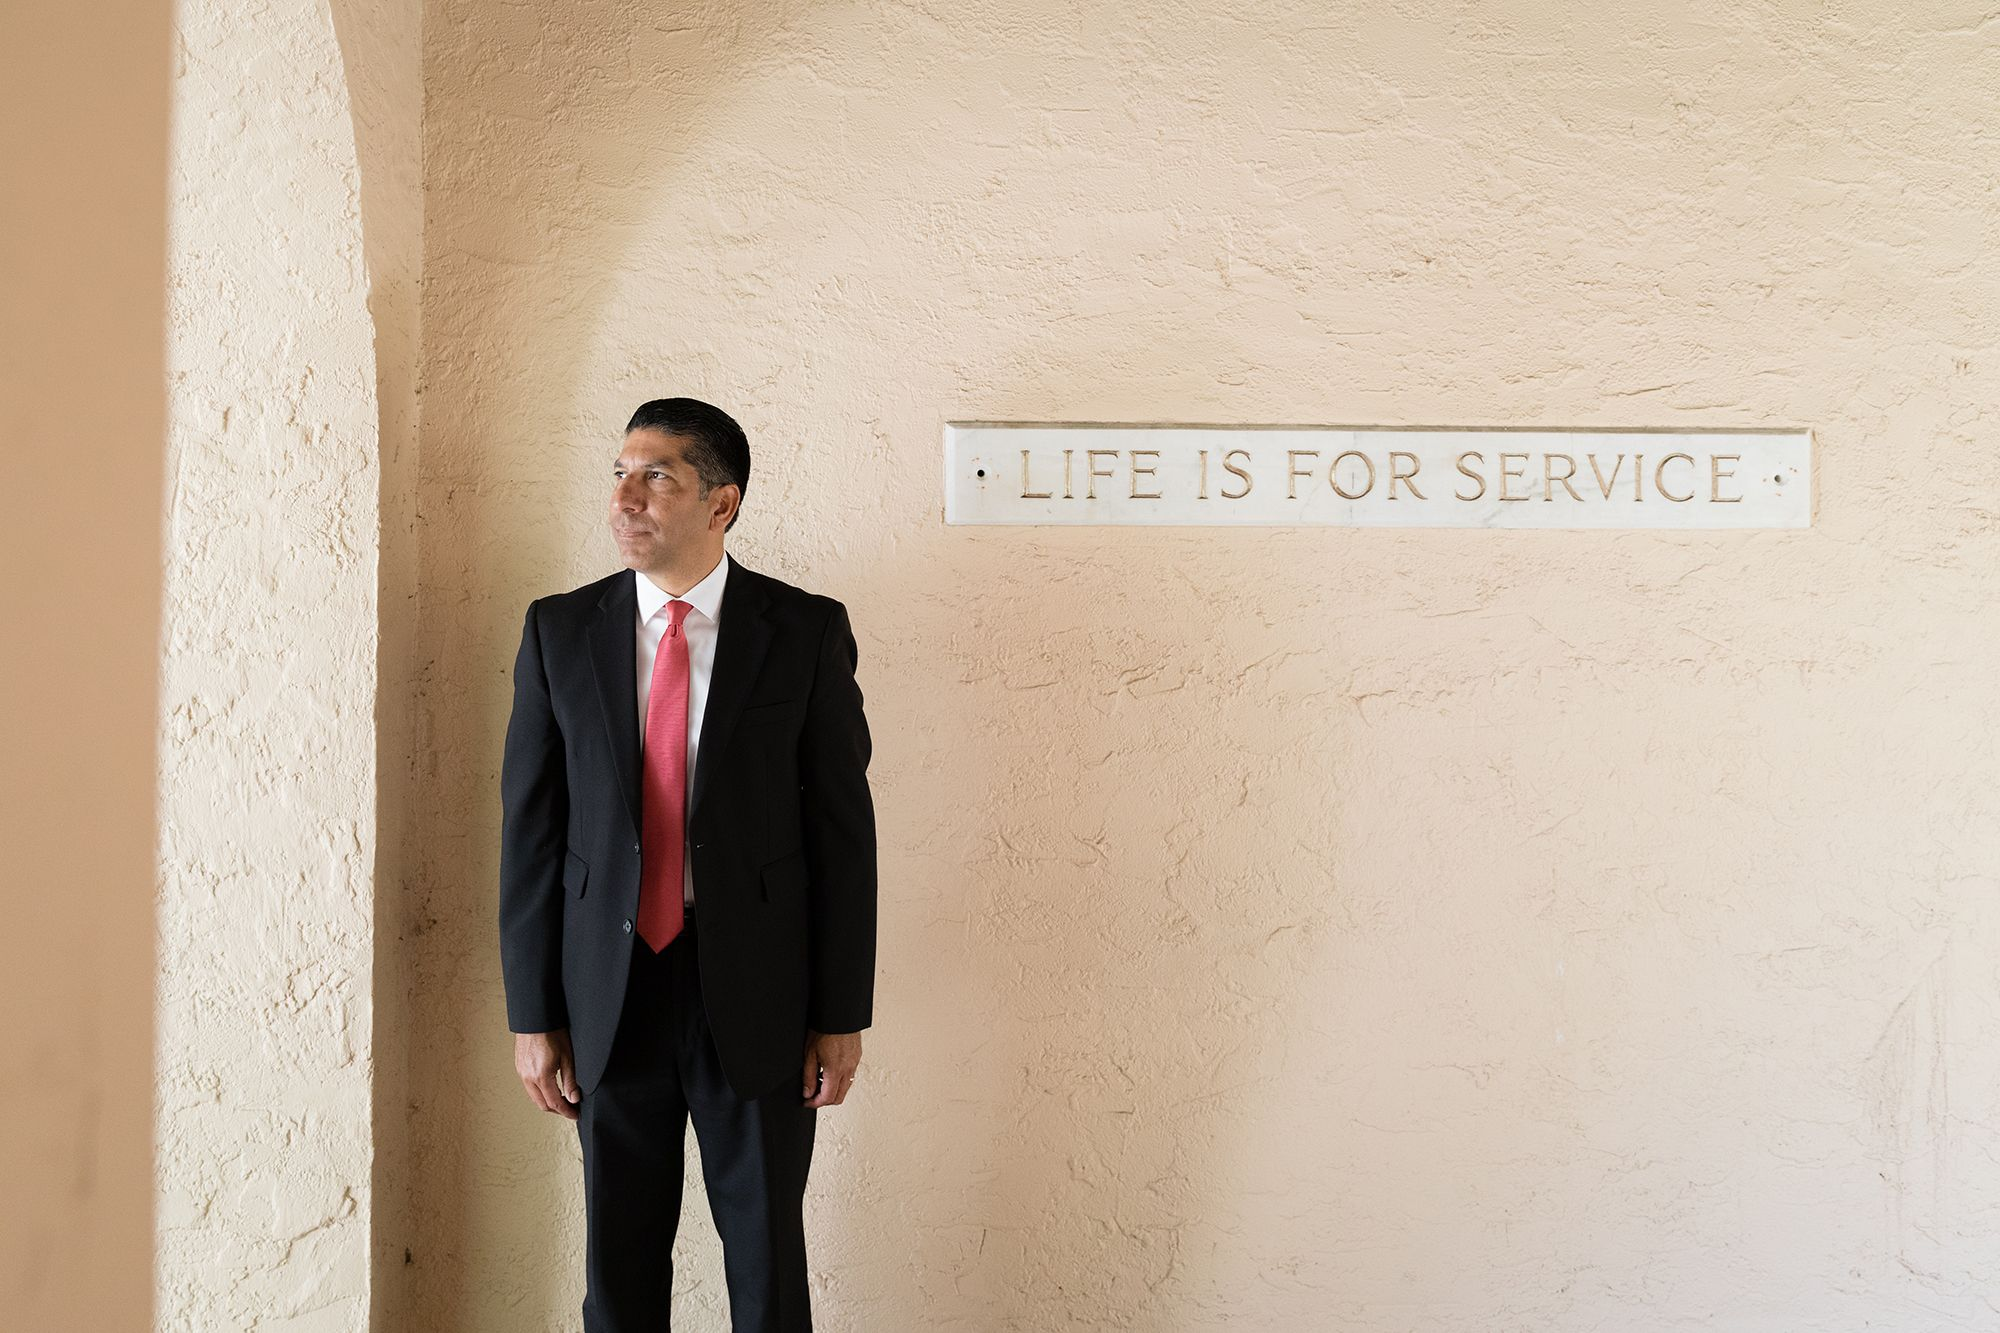 """Jose Fernandez '92 pictured in front of the """"Life is for Service"""" engraving at Rollins College."""